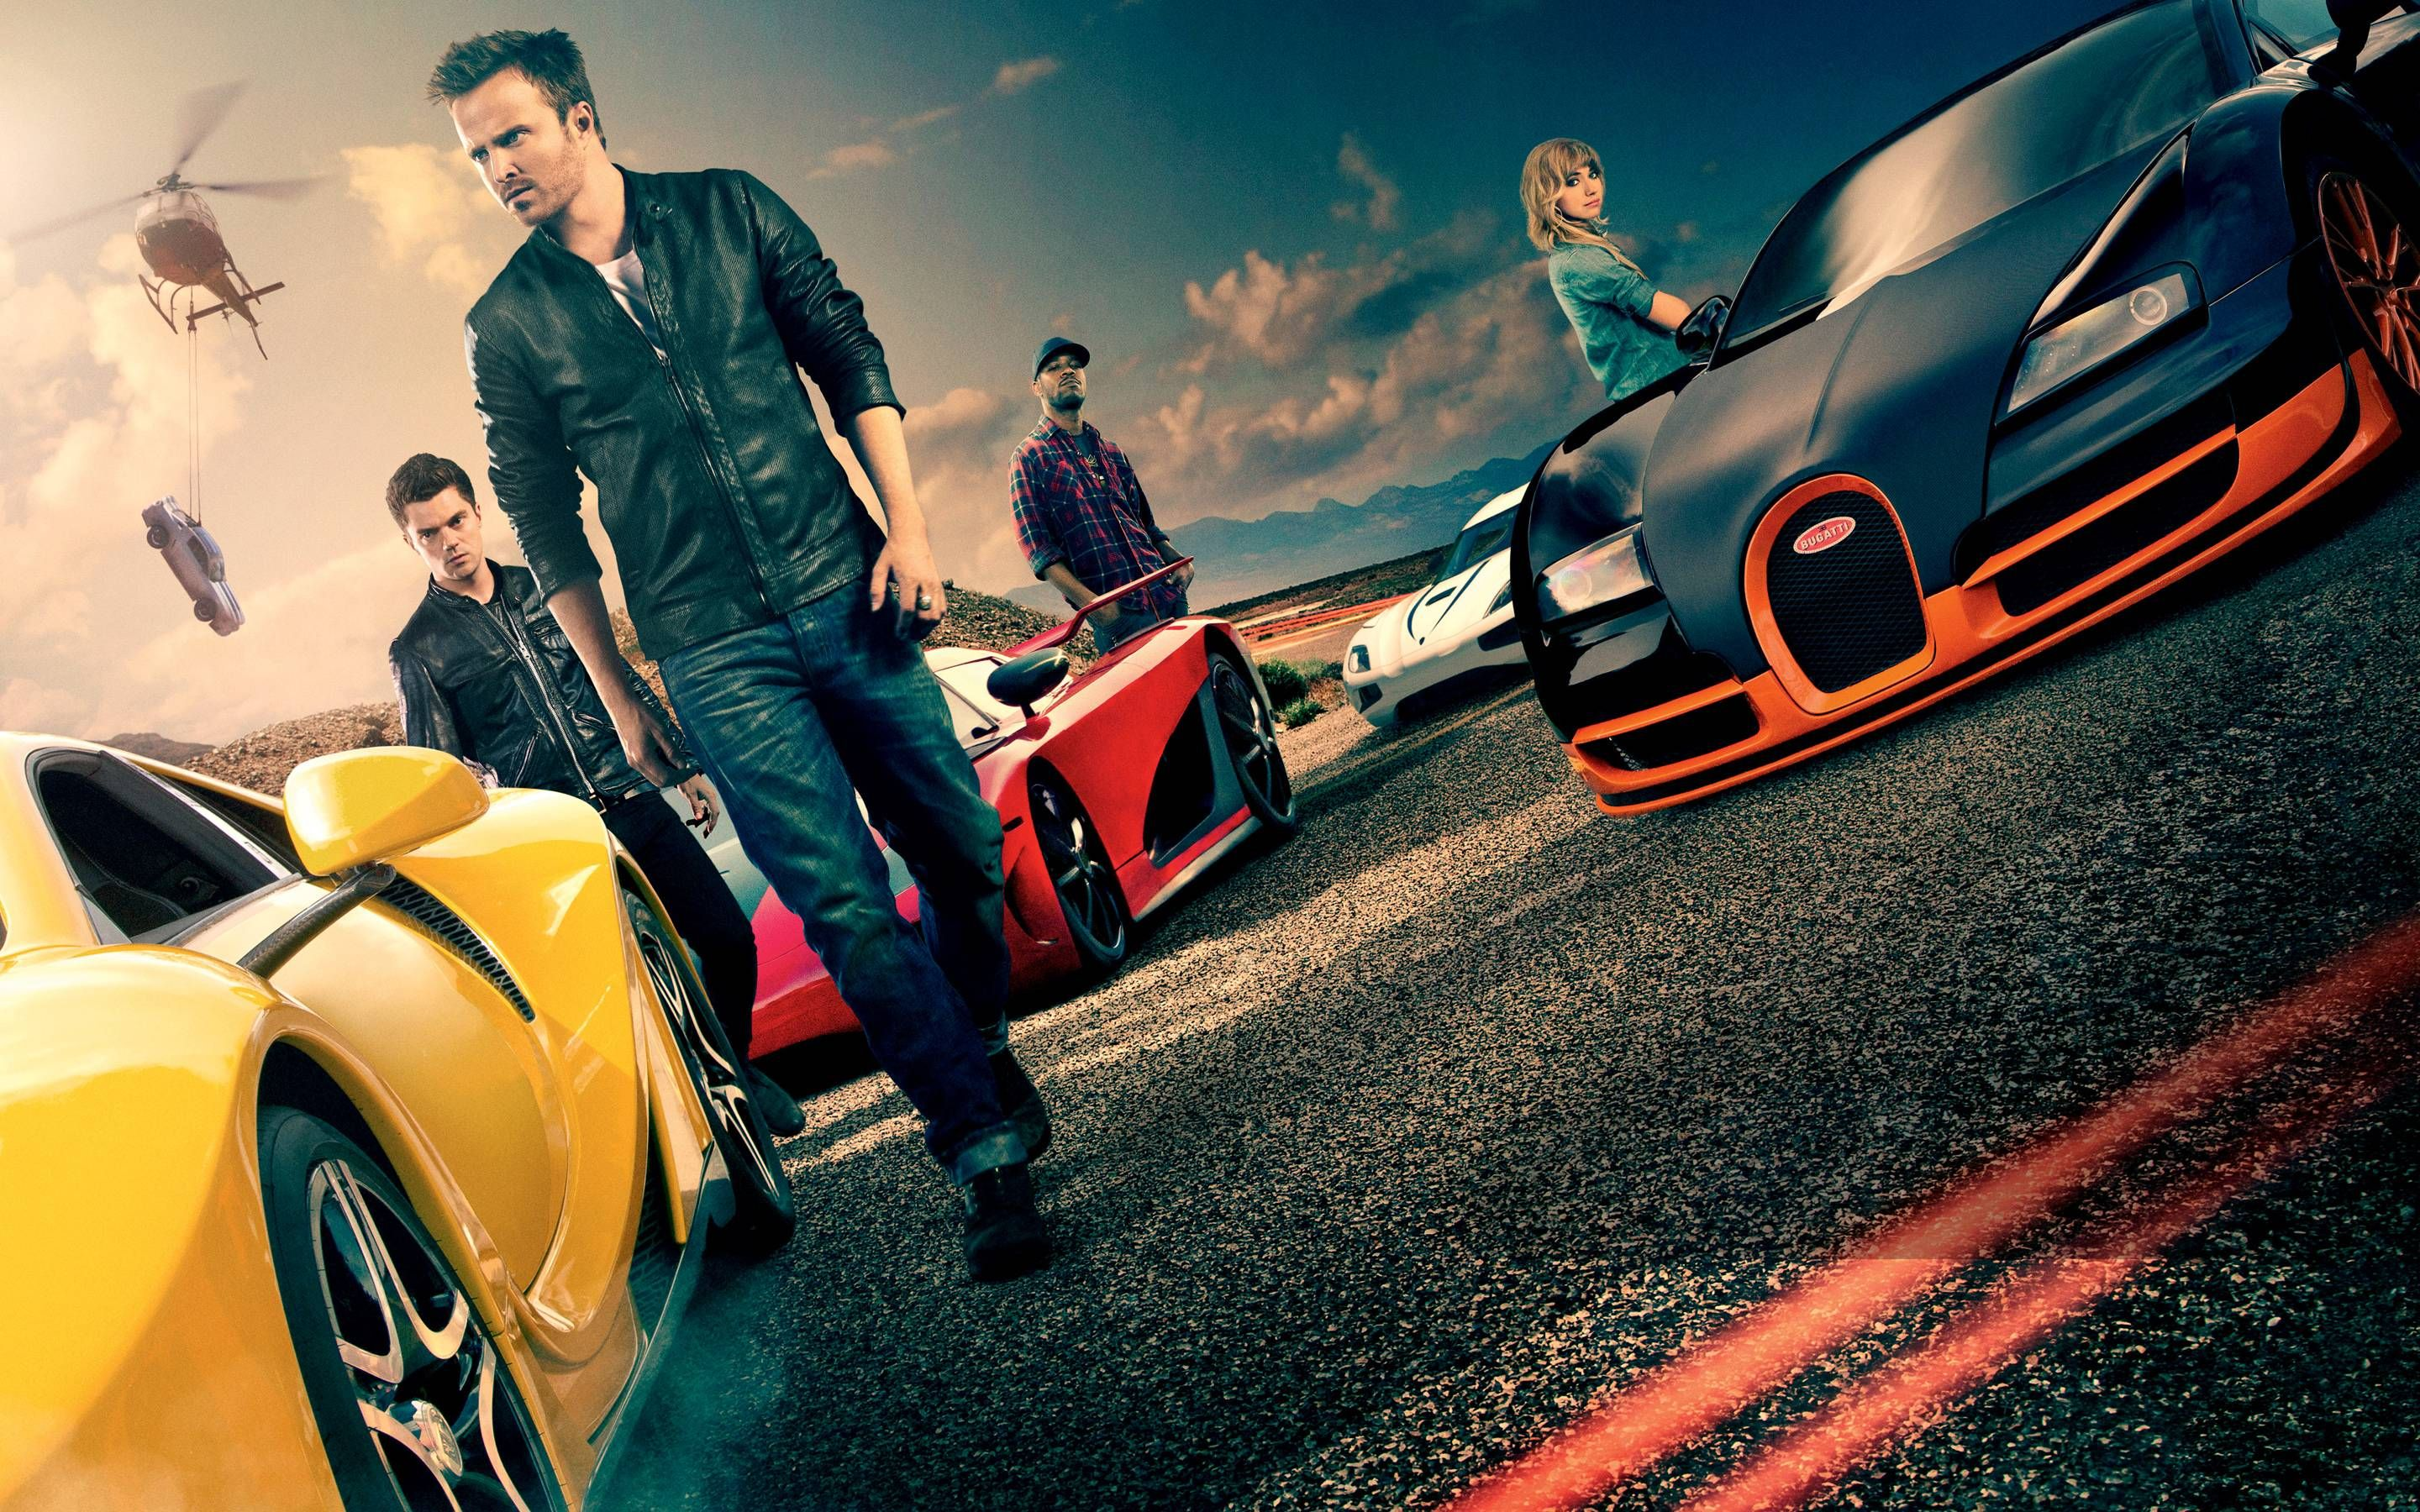 Hd wallpaper you need - Need For Speed 2014 Movie Wallpapers Hd Wallpapers